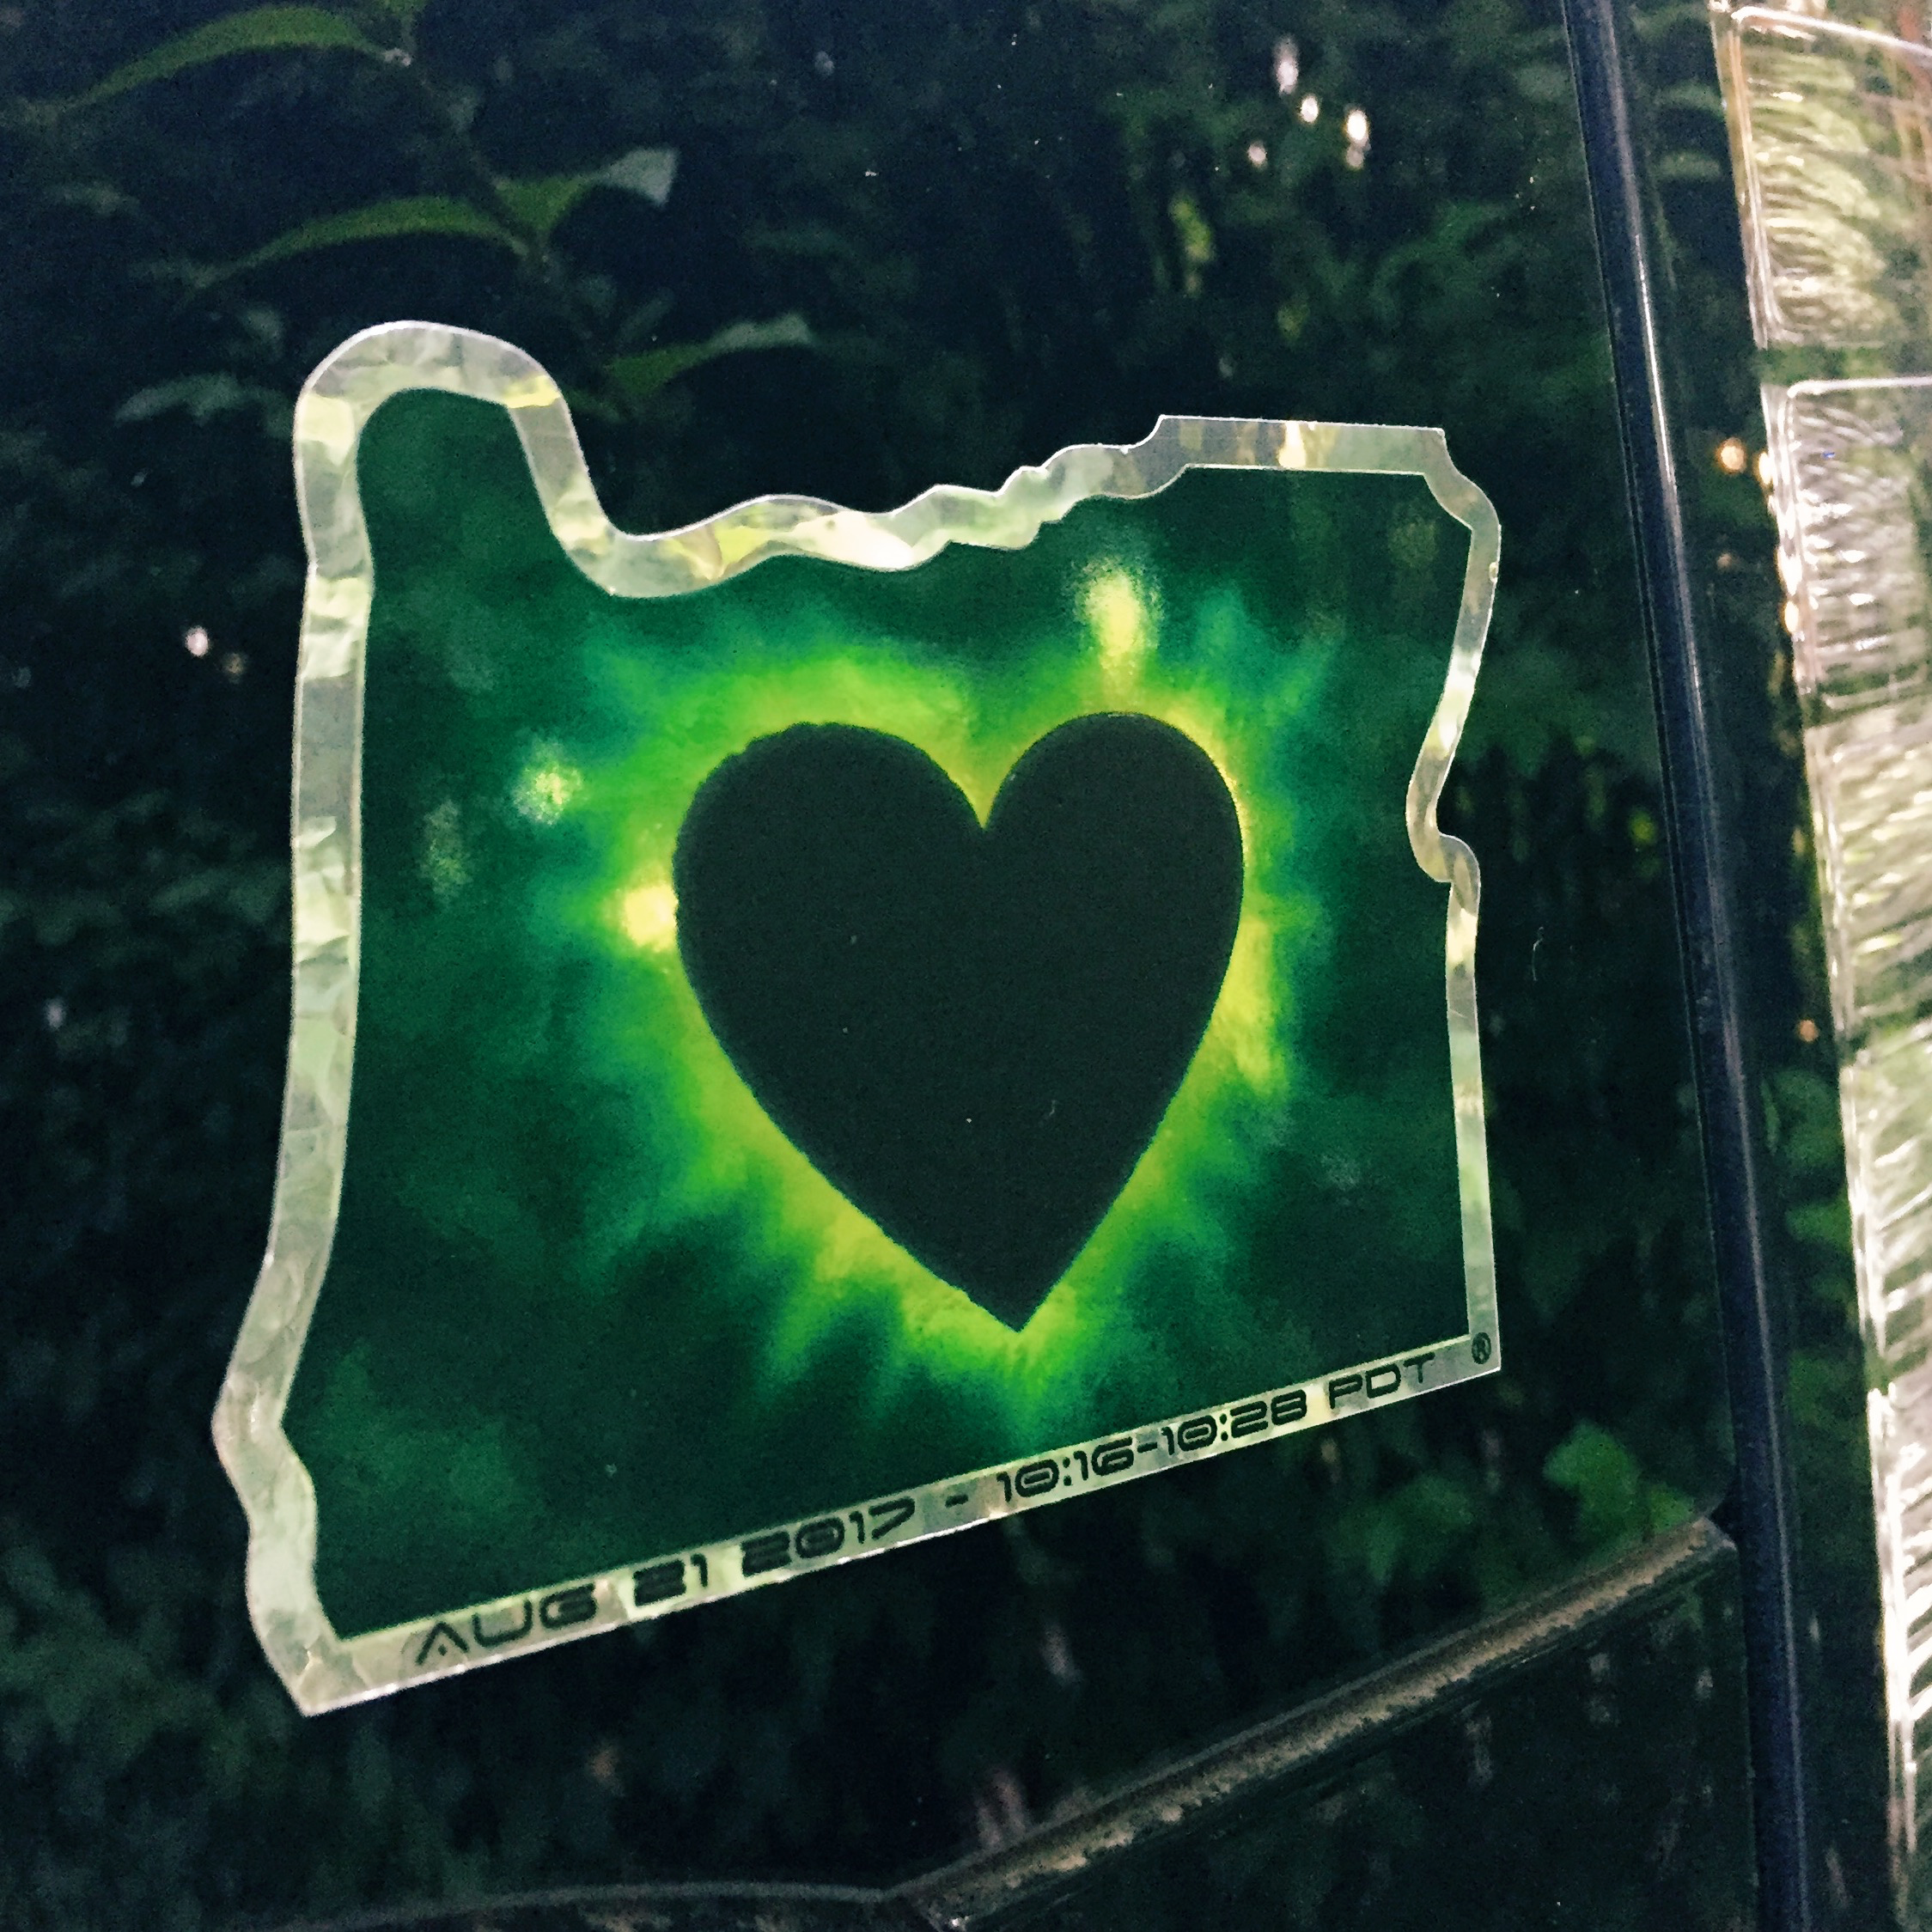 Oregon eclipse love.